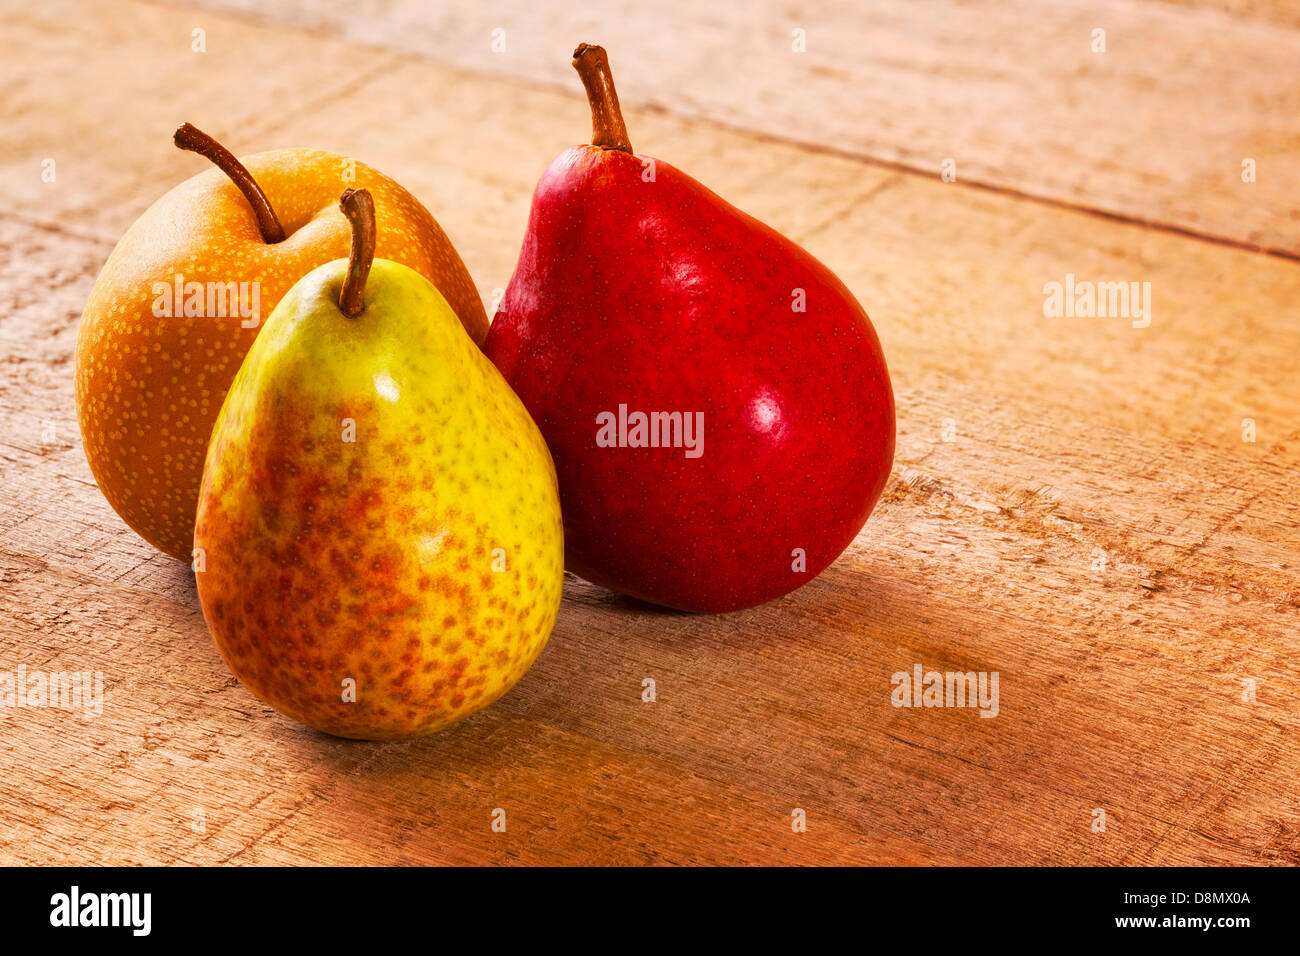 Pears on a Rustic Wood Surface - three different pears on a rustic wooden plank surface... - Stock Image